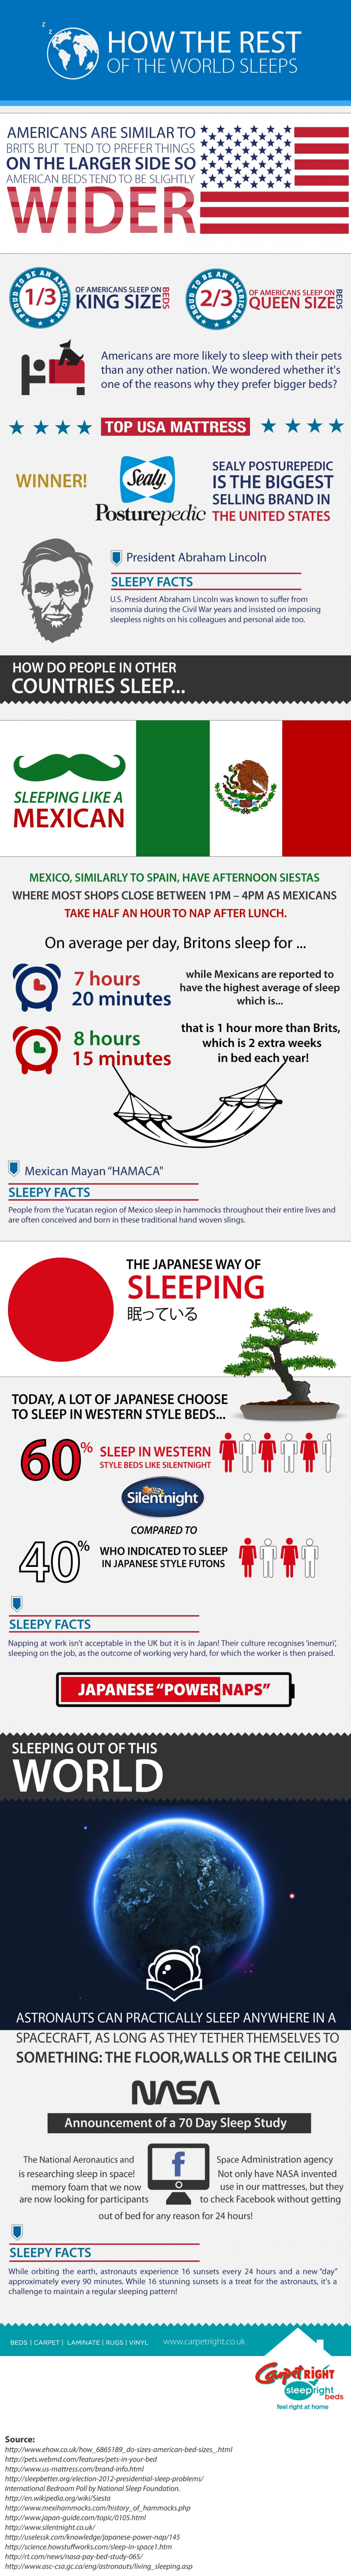 How the Rest of the World Sleeps Infographic